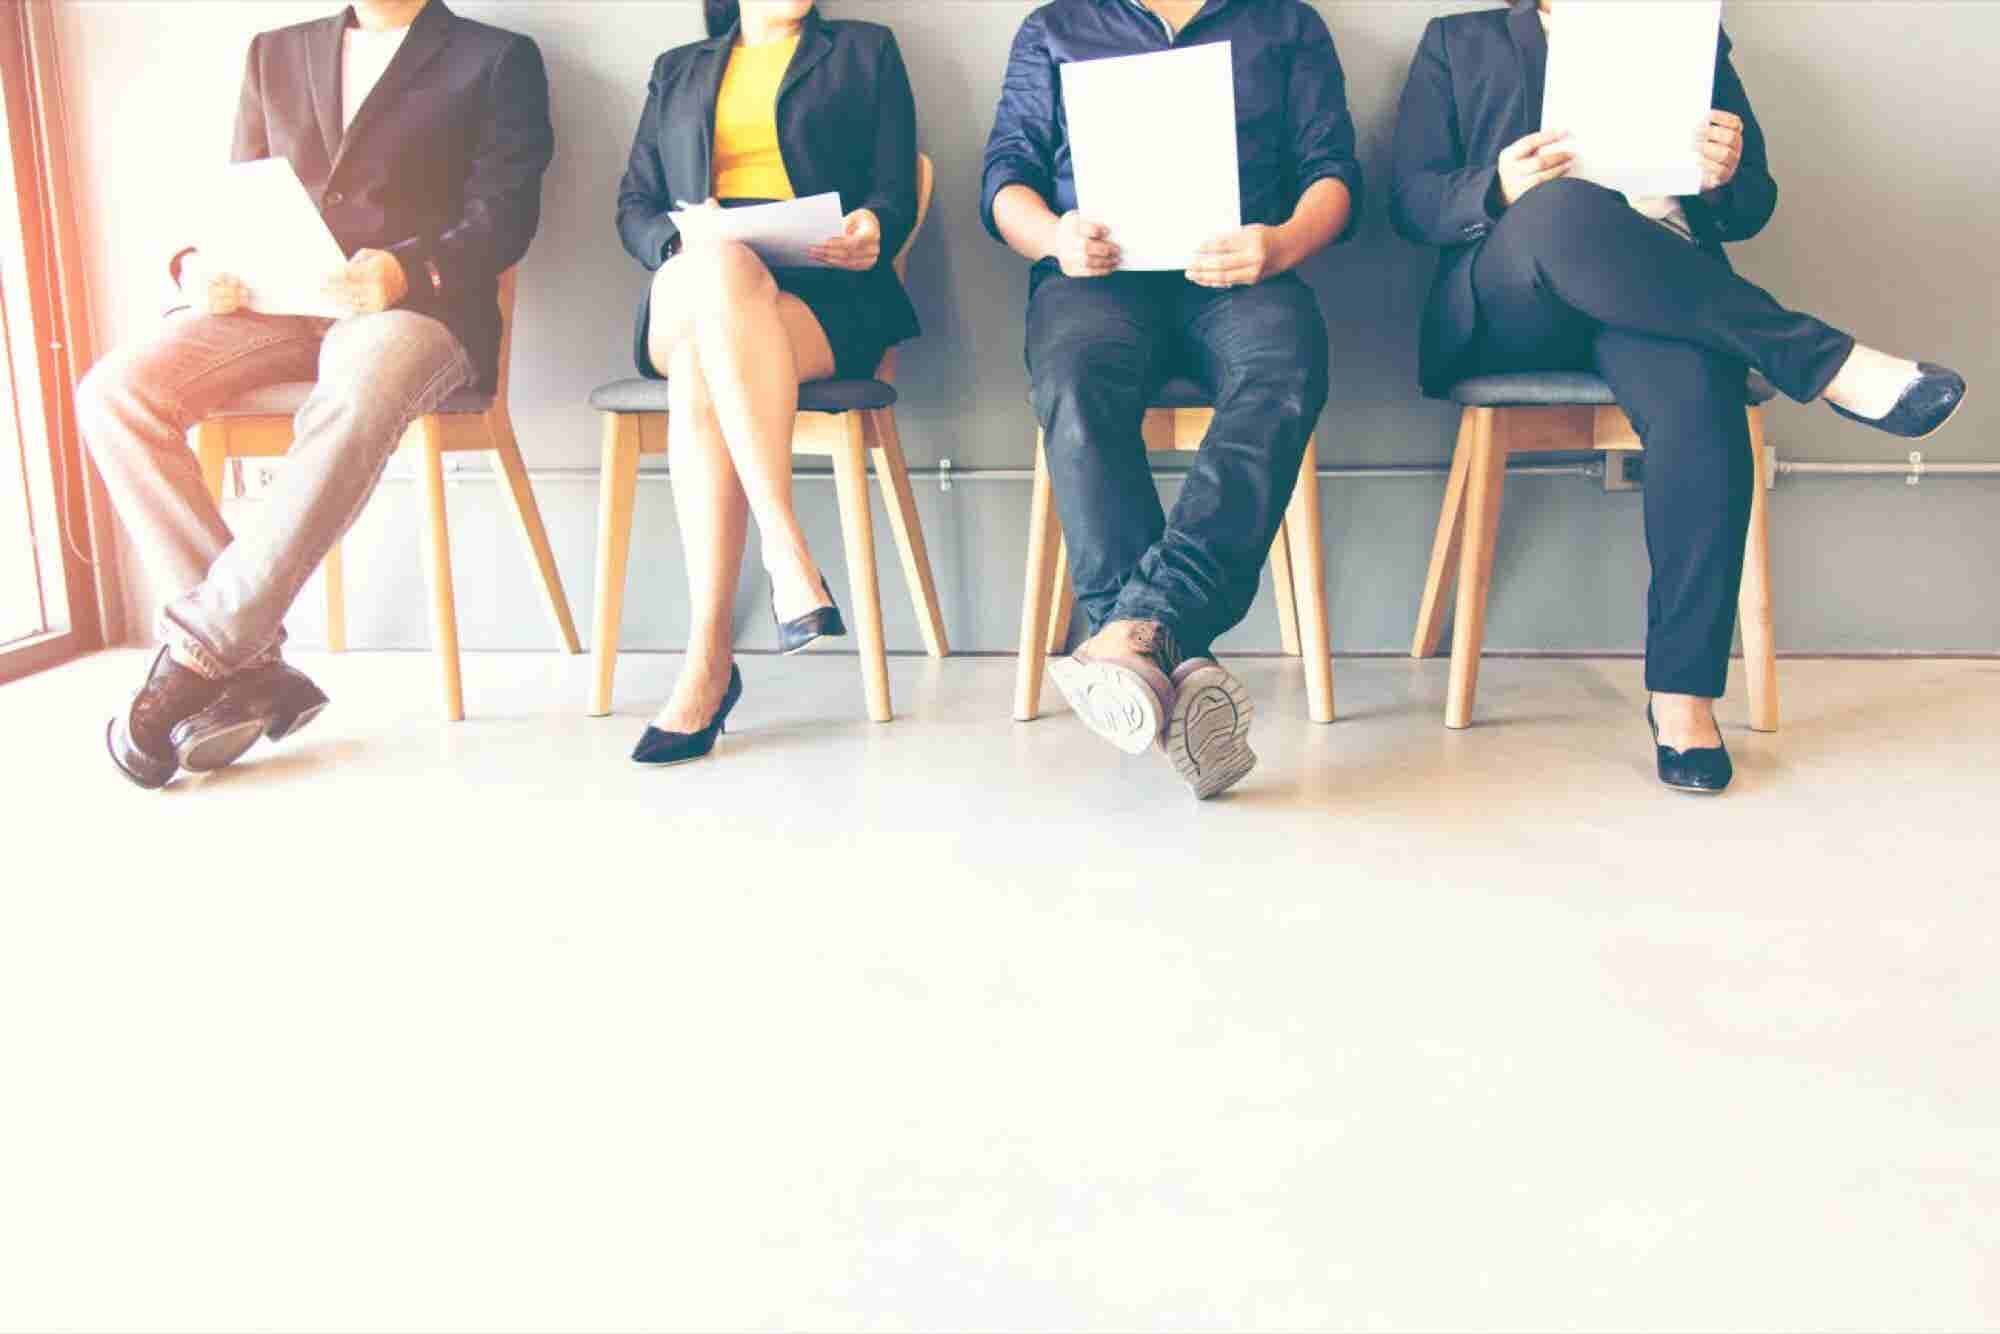 The Key to Hiring the Best Candidate Is Deciding What's Most Important